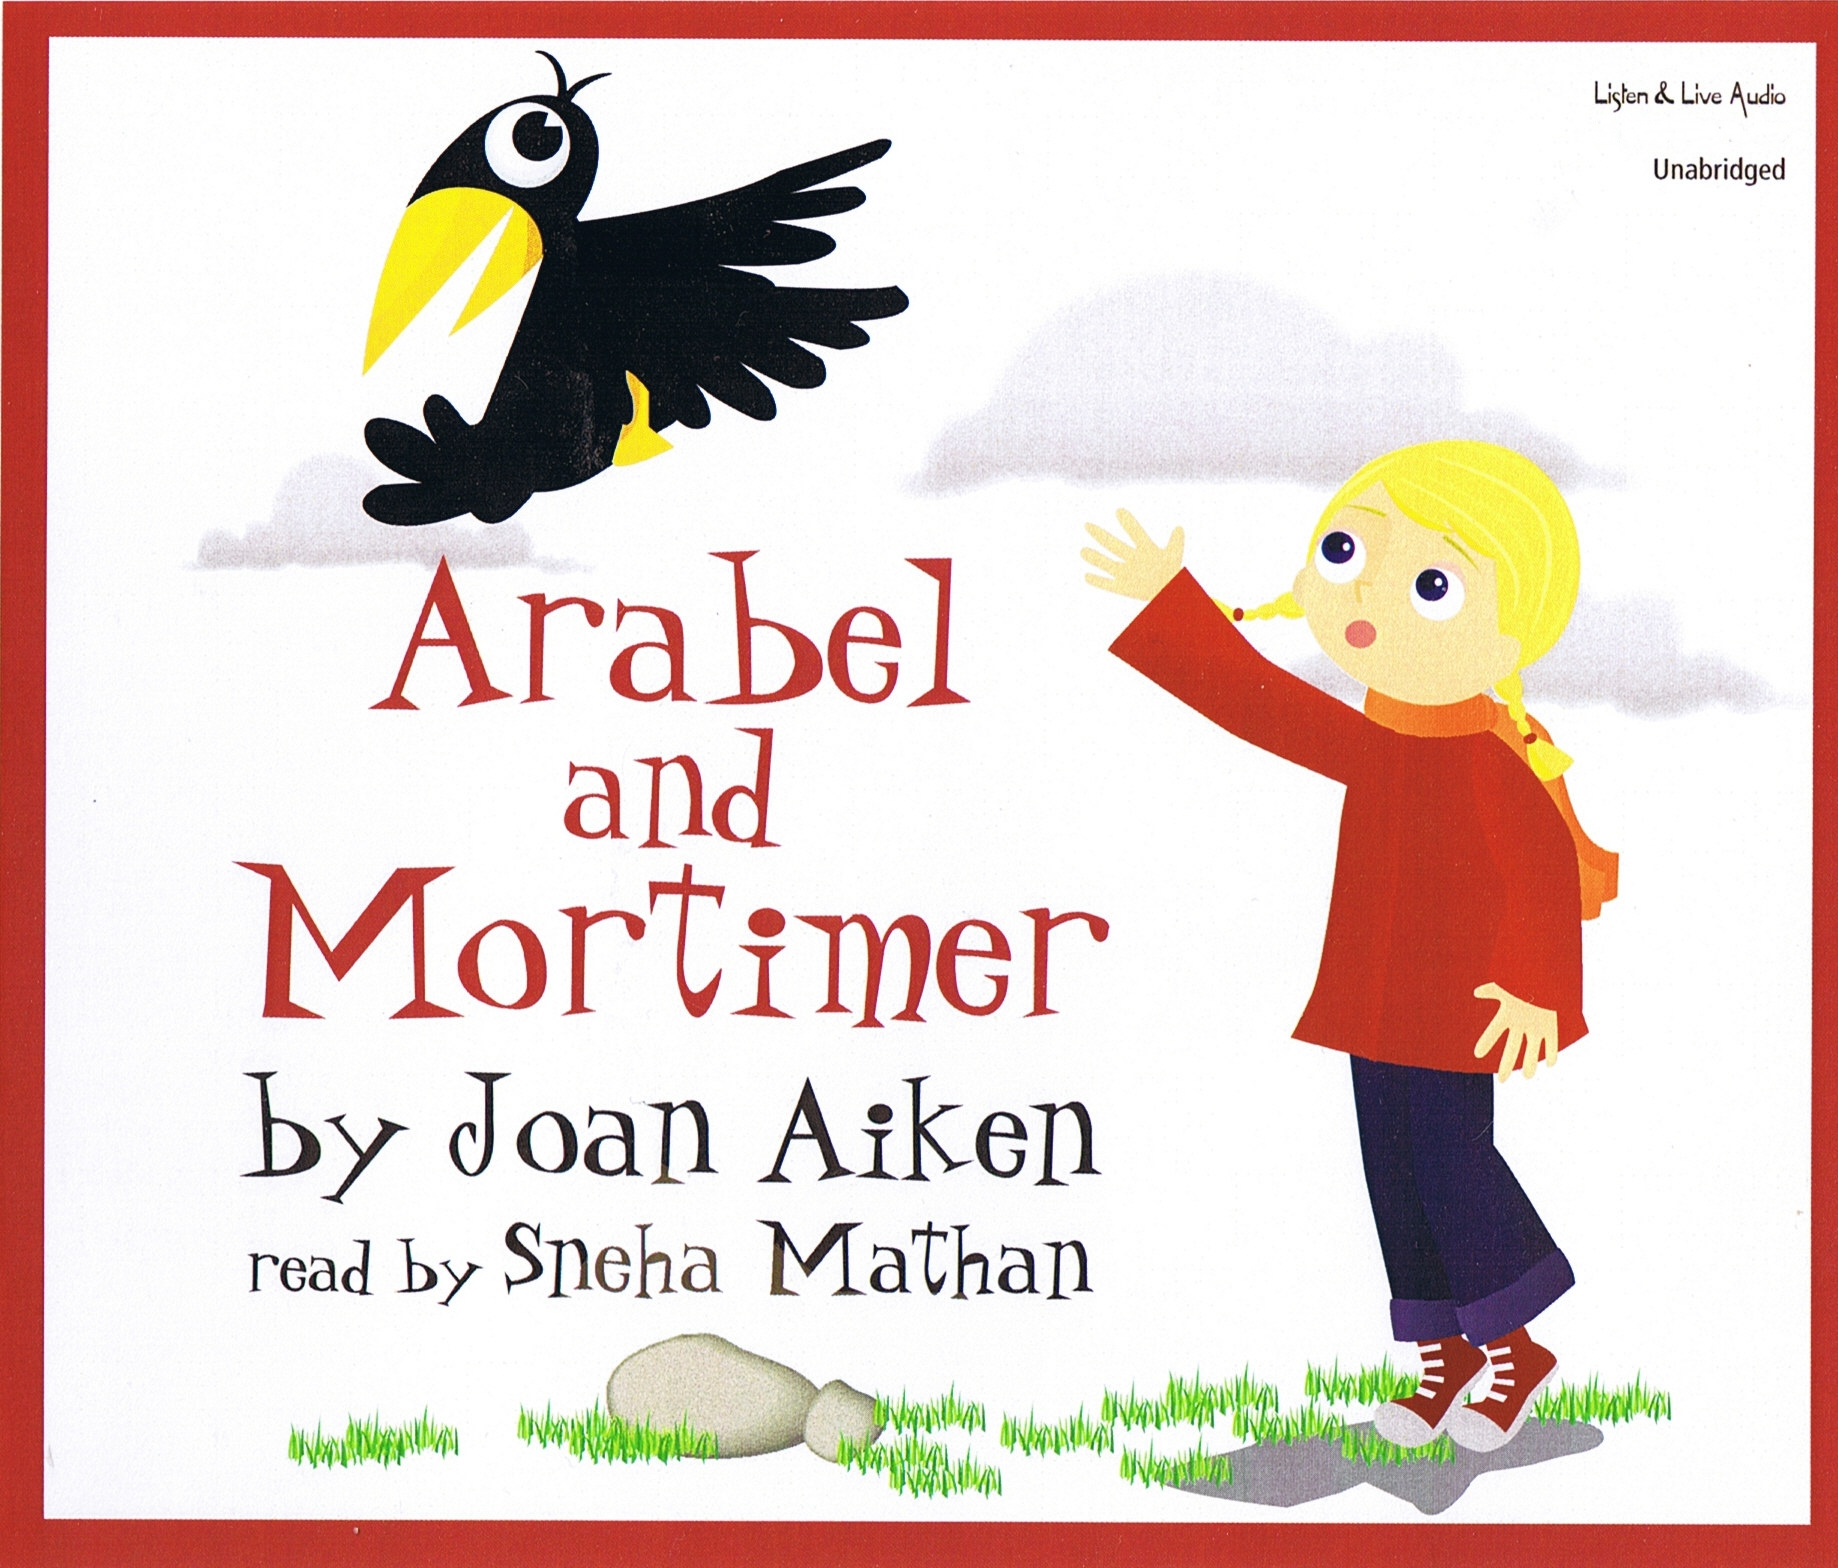 Arabel And Mortimer [3CD]